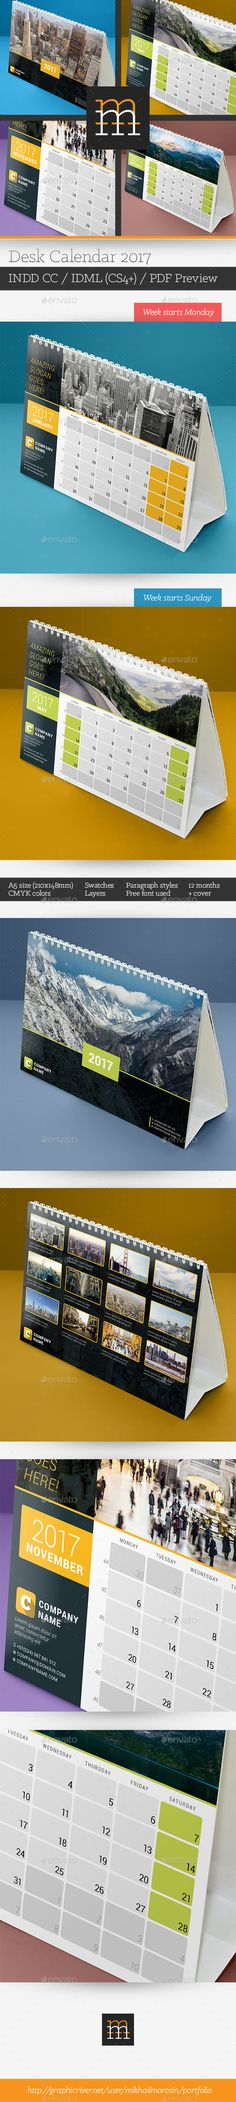 Desk Calendar  Template Indesign Indd  Calendar Templates